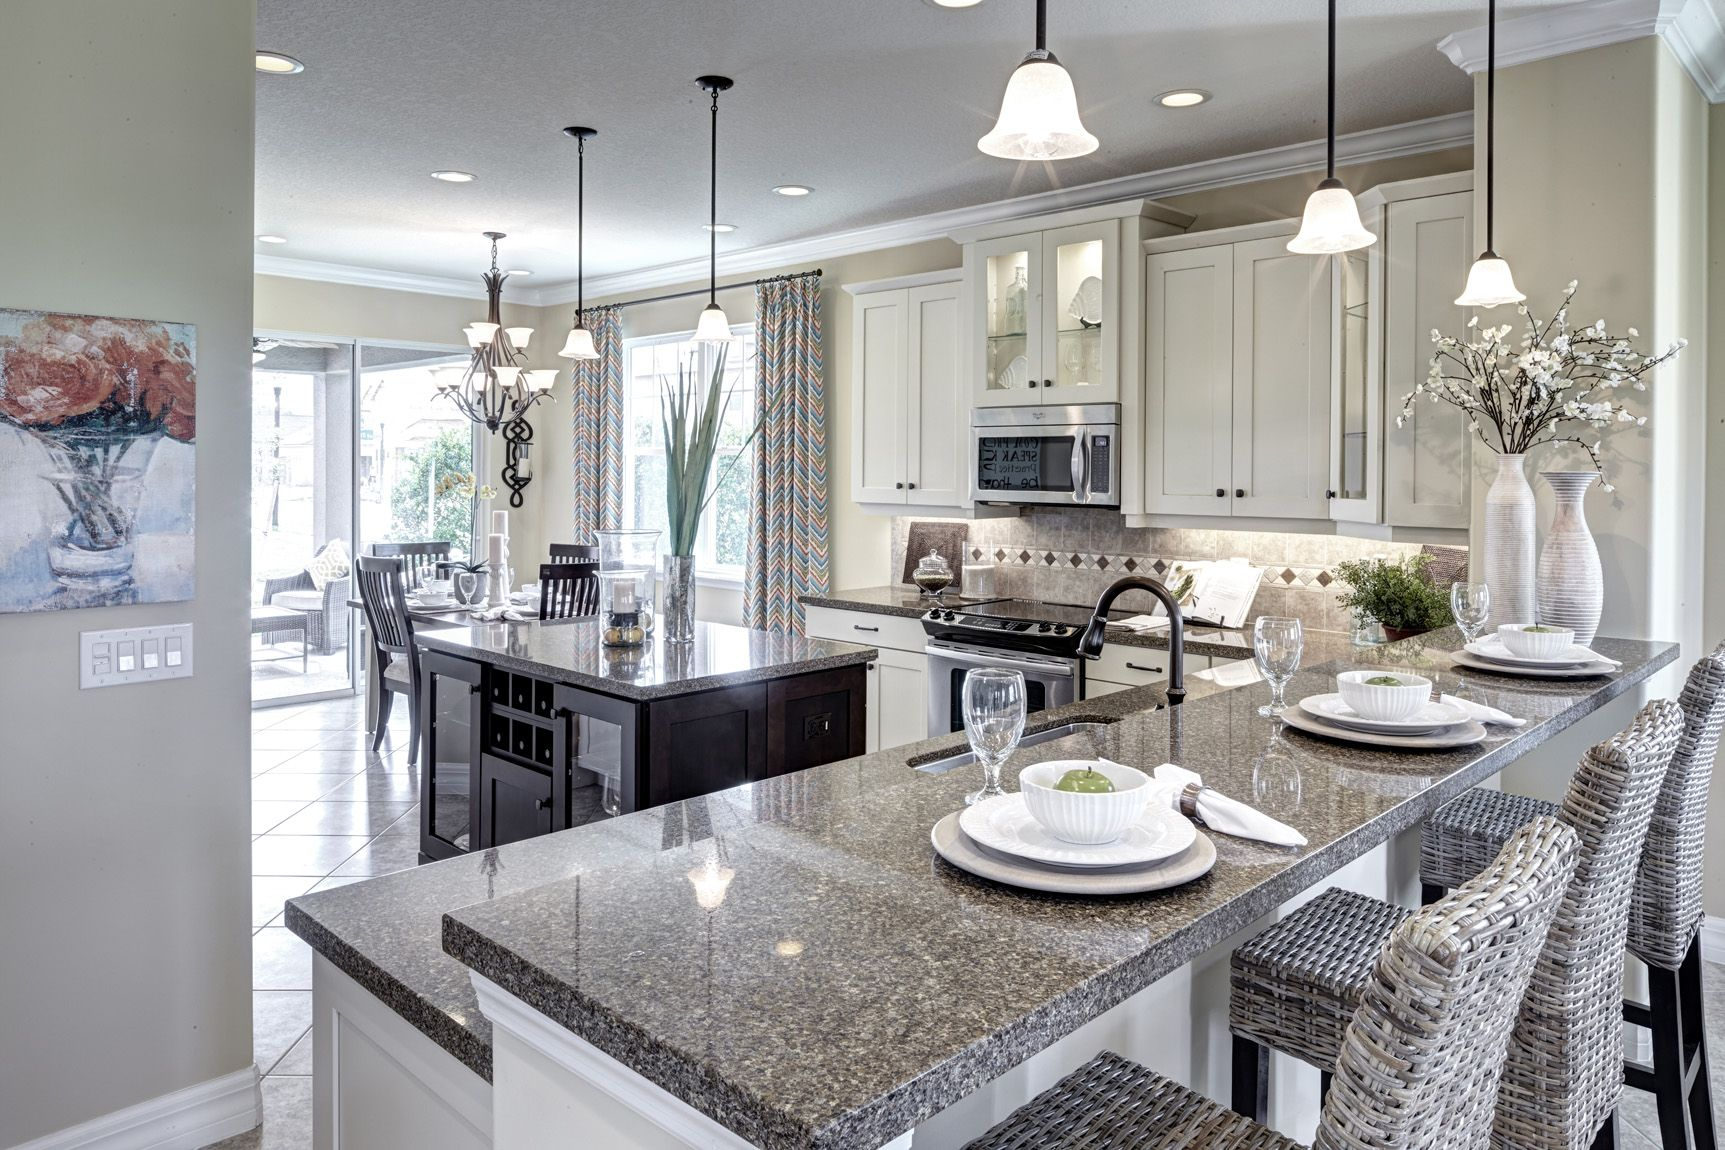 Elegant lighting makes for an elegant kitchen. Our exquisite